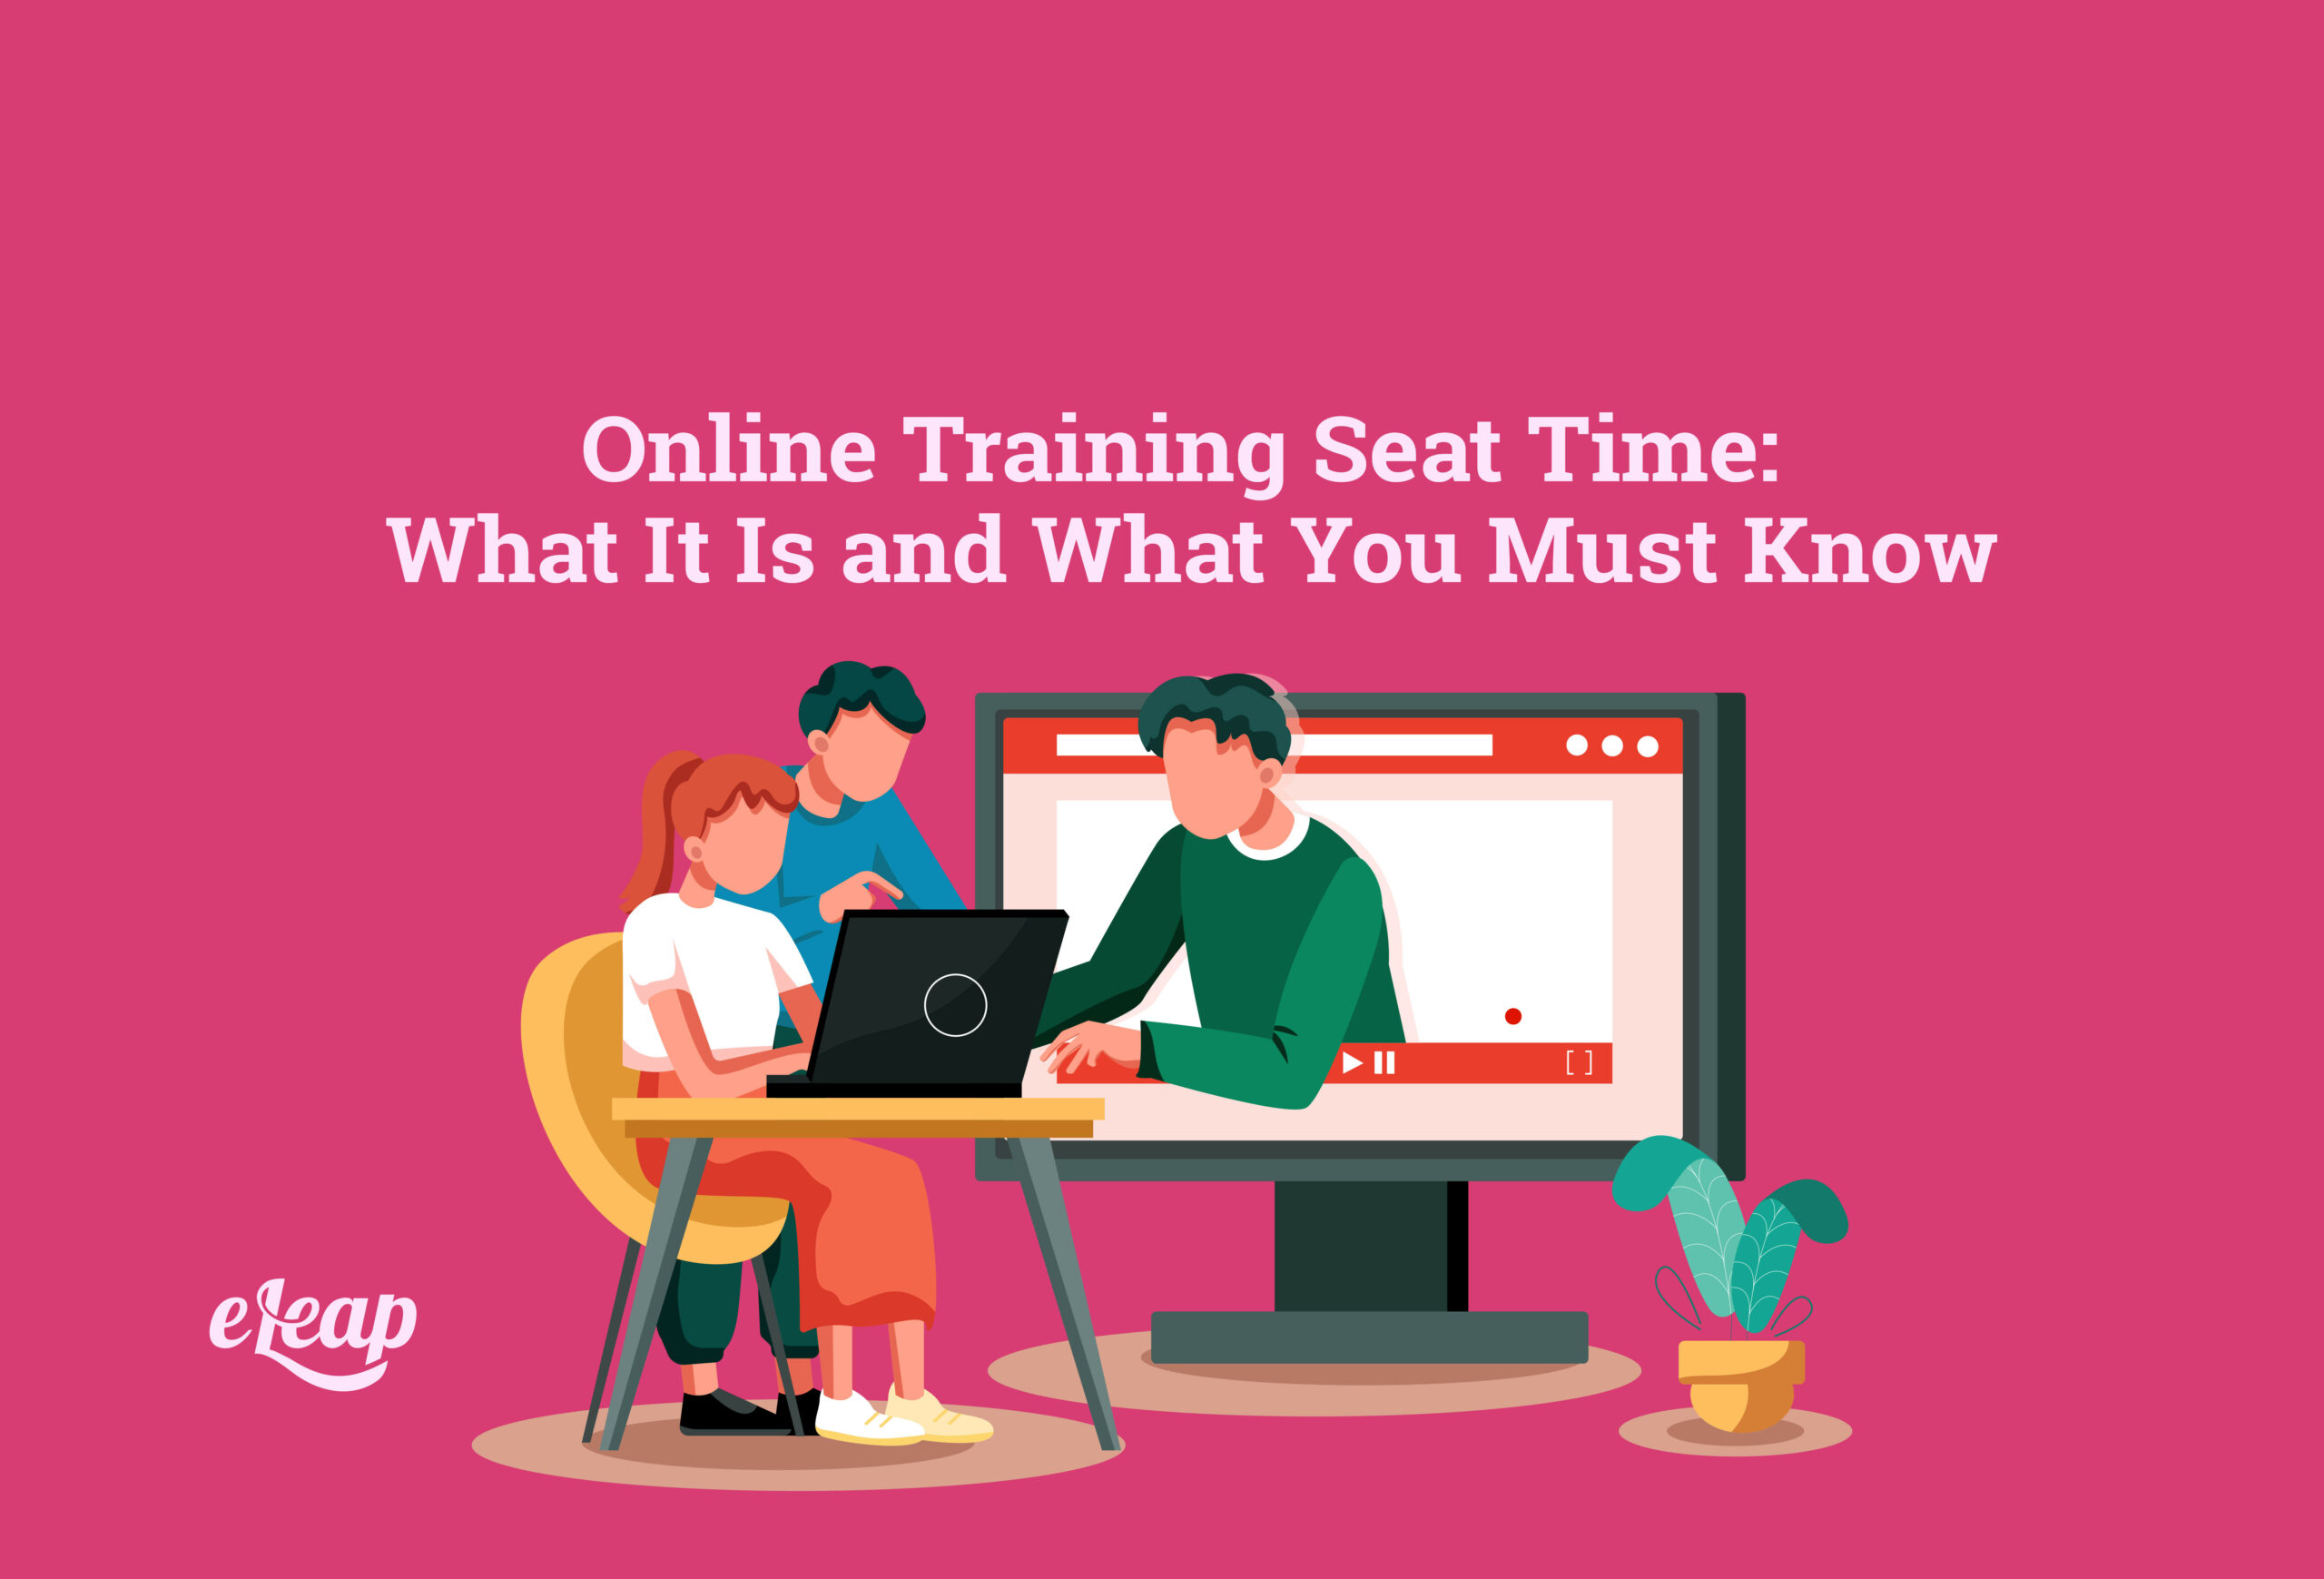 Online Training Seat Time: What It Is and What You Must Know